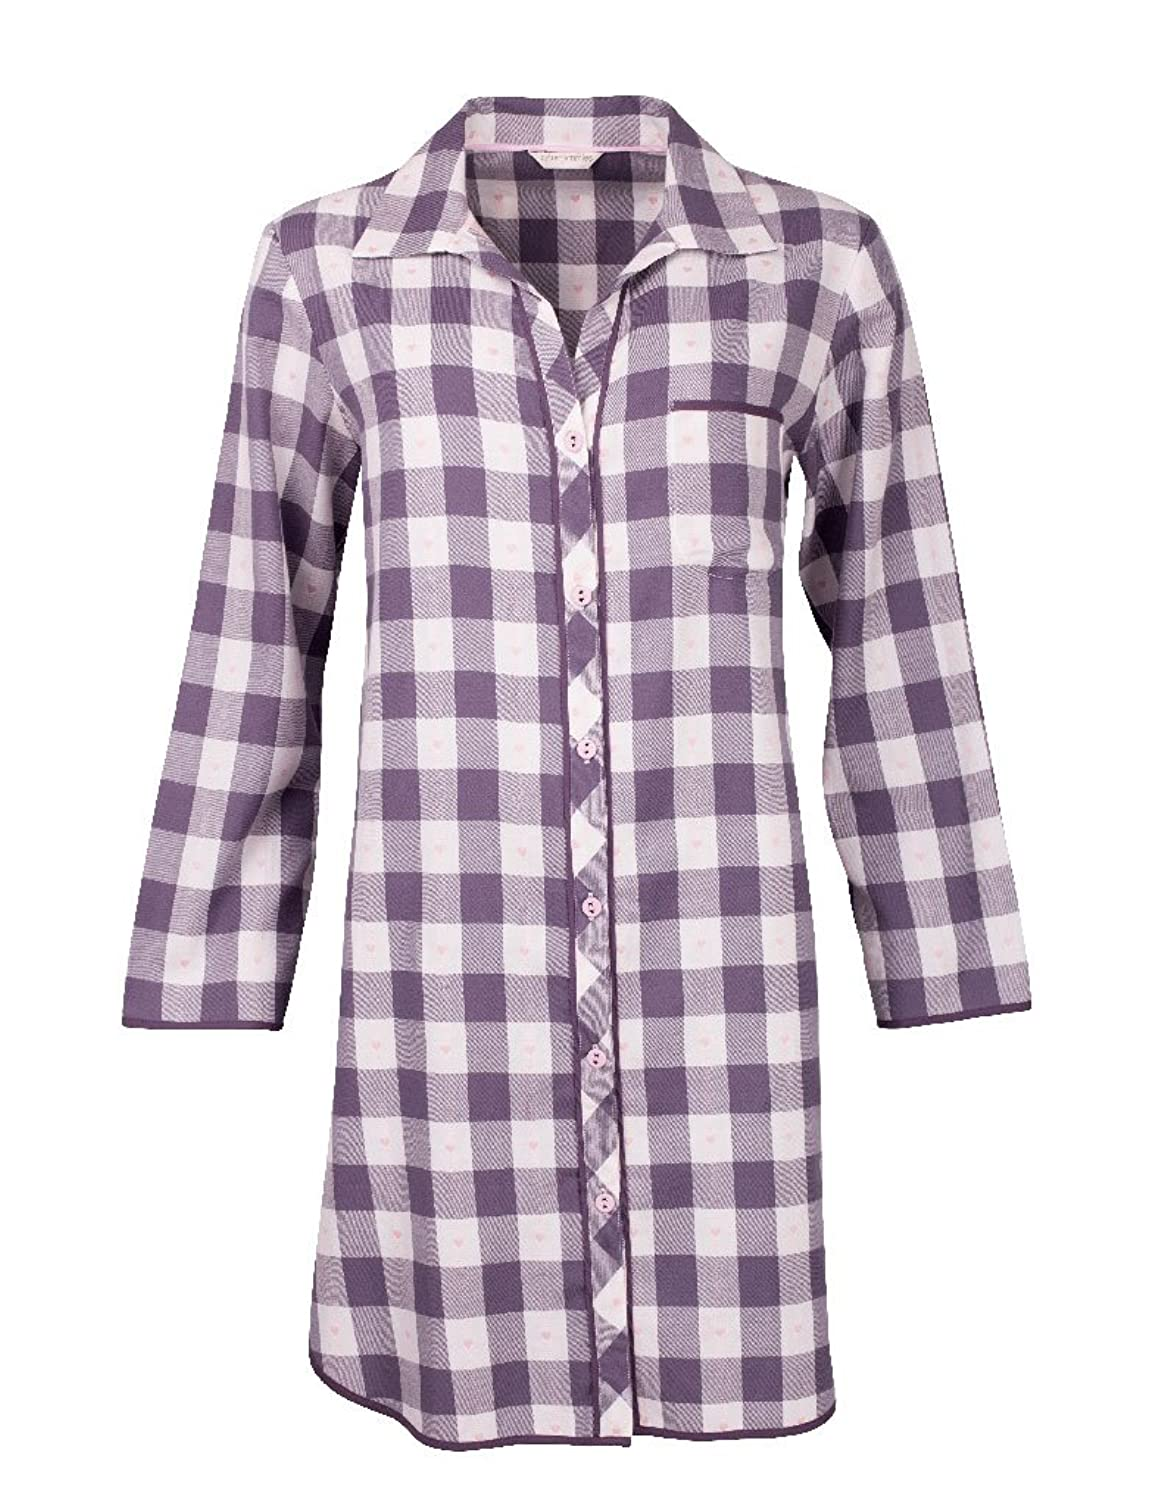 Cyberjammies Humming Bird Heart Dobby Check Grey Cotton Woven Nightshirt 0719